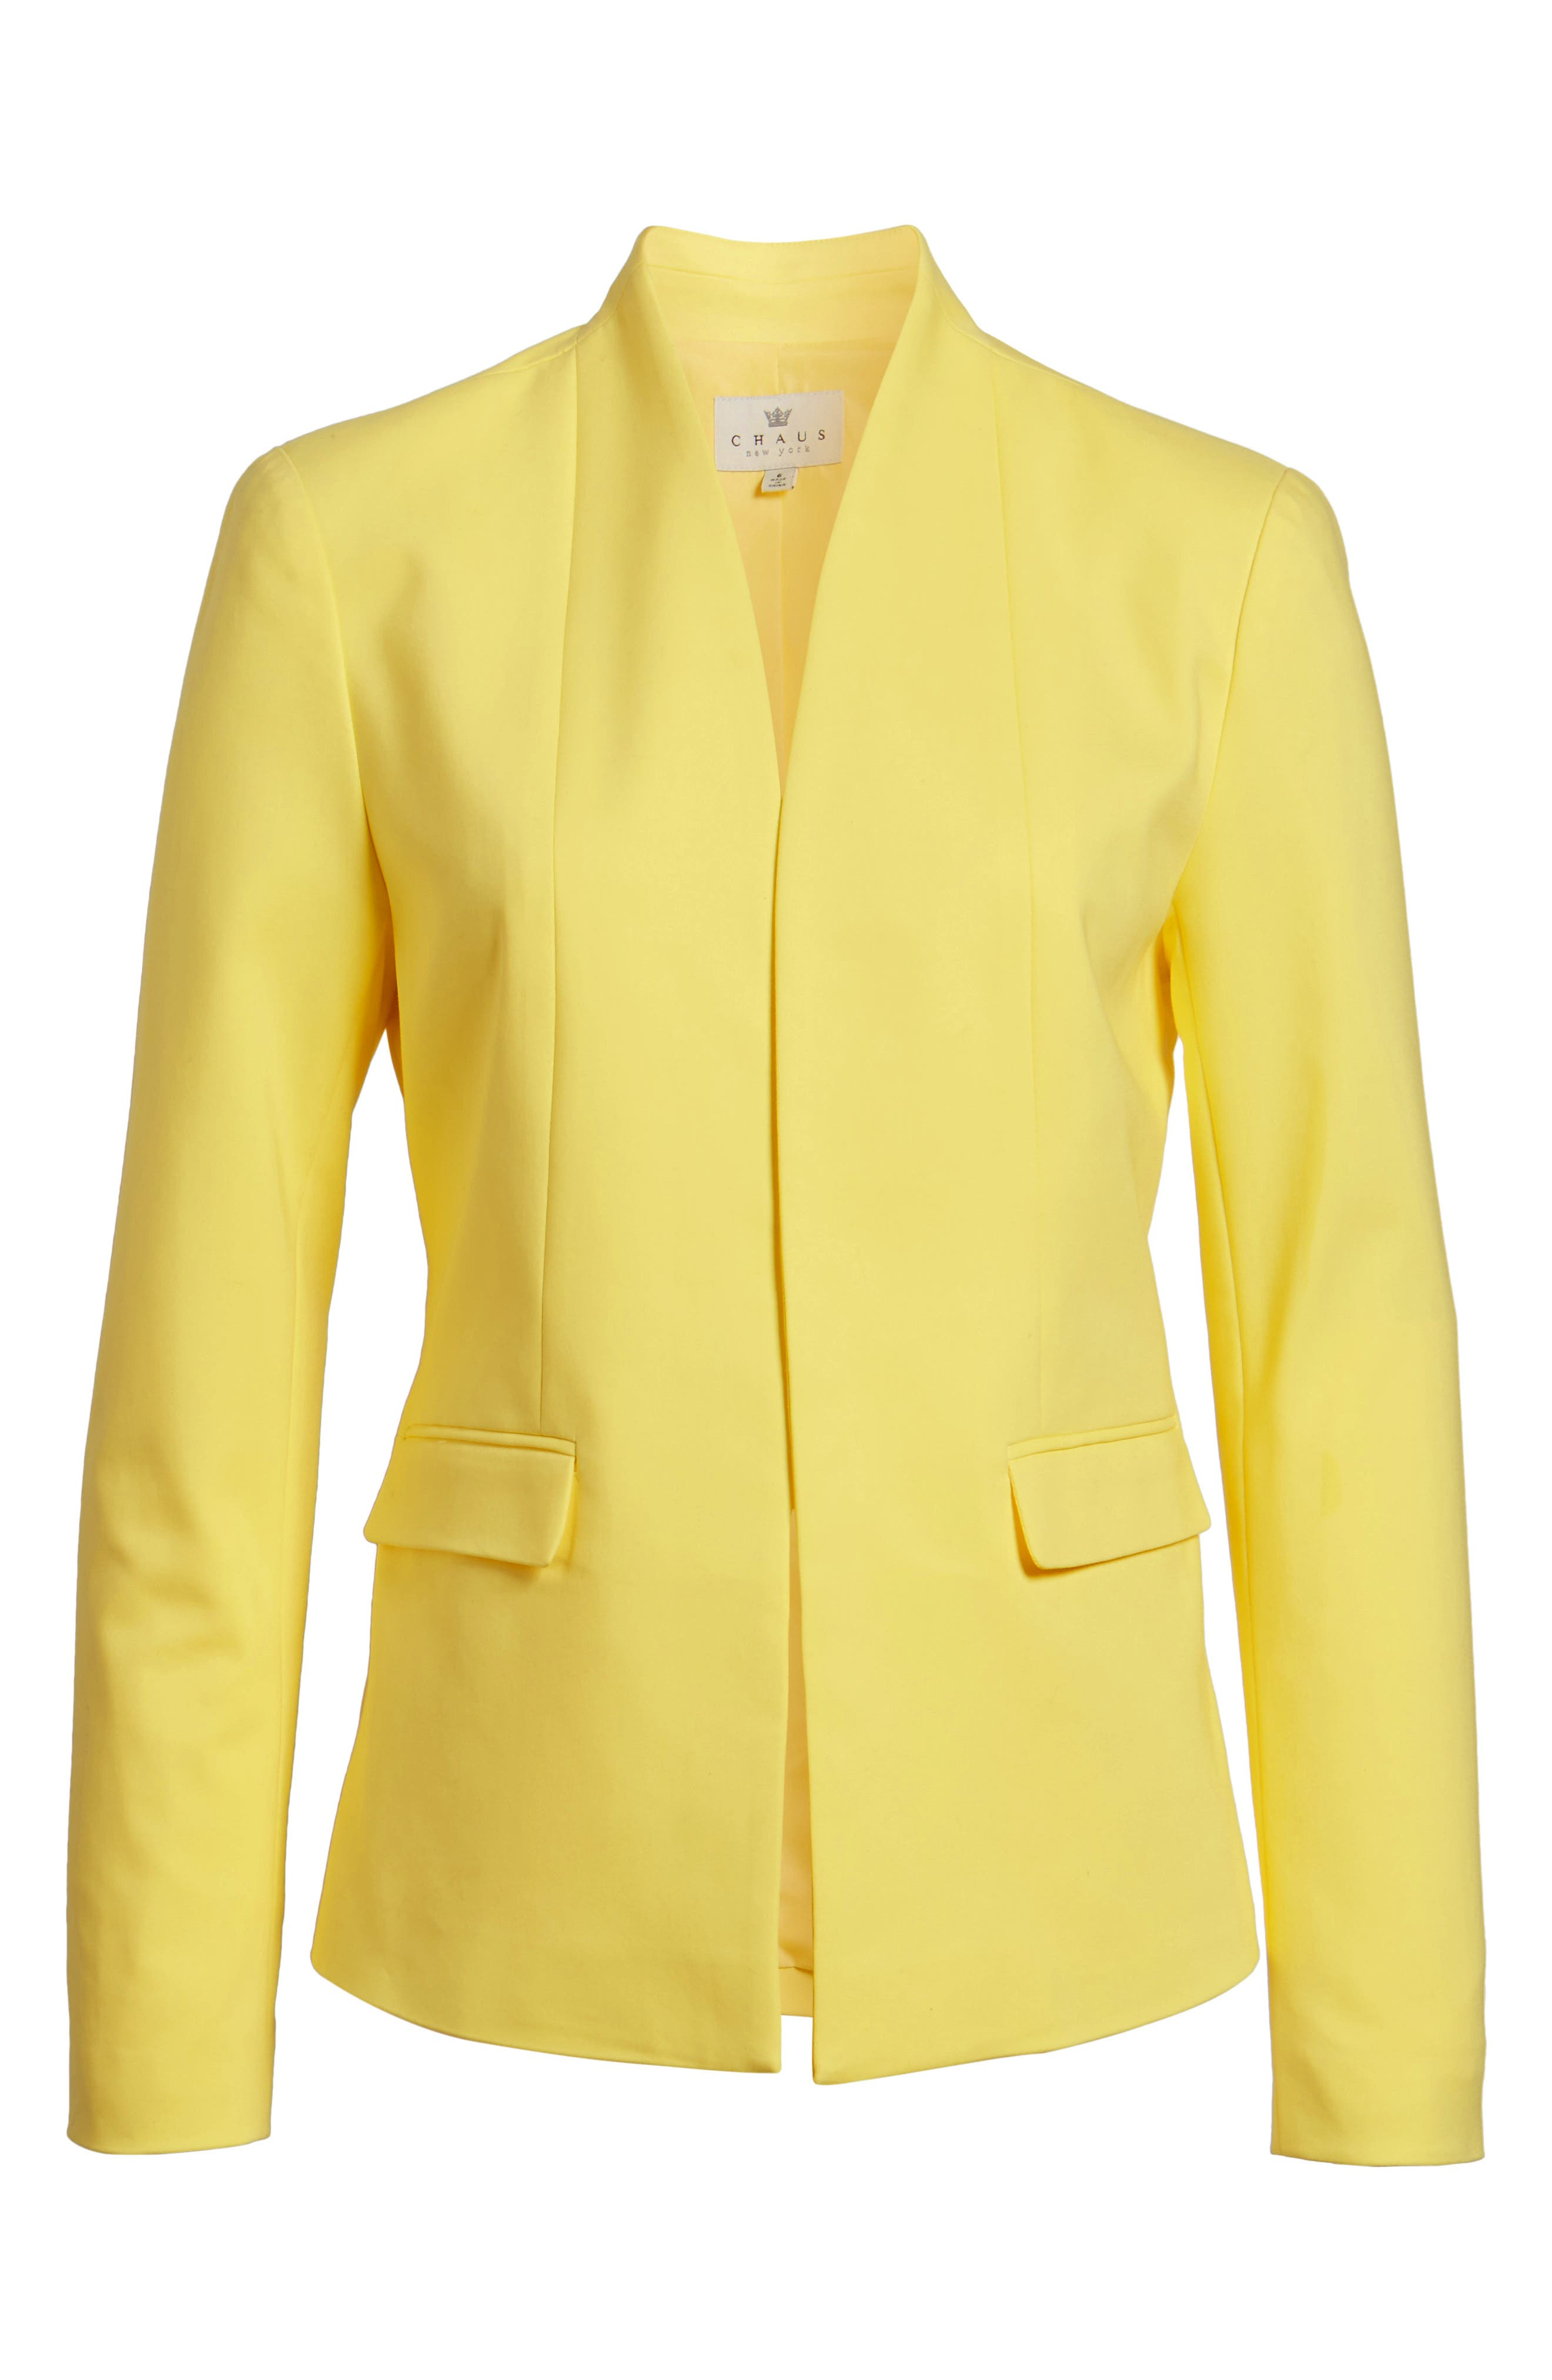 Stand Collar Jacket,                             Alternate thumbnail 5, color,                             784